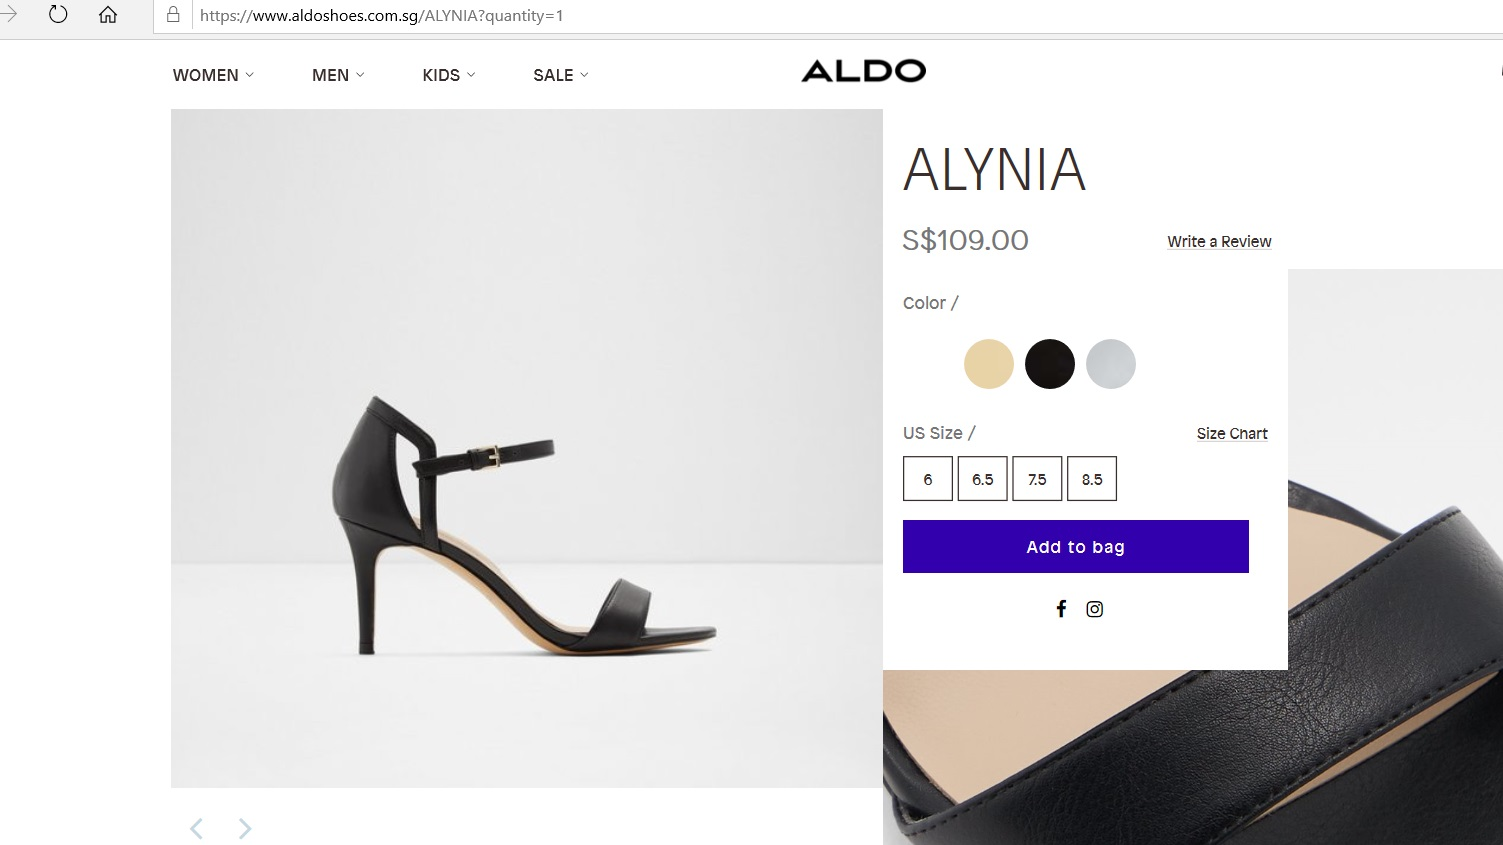 Product page for Alynia heels.